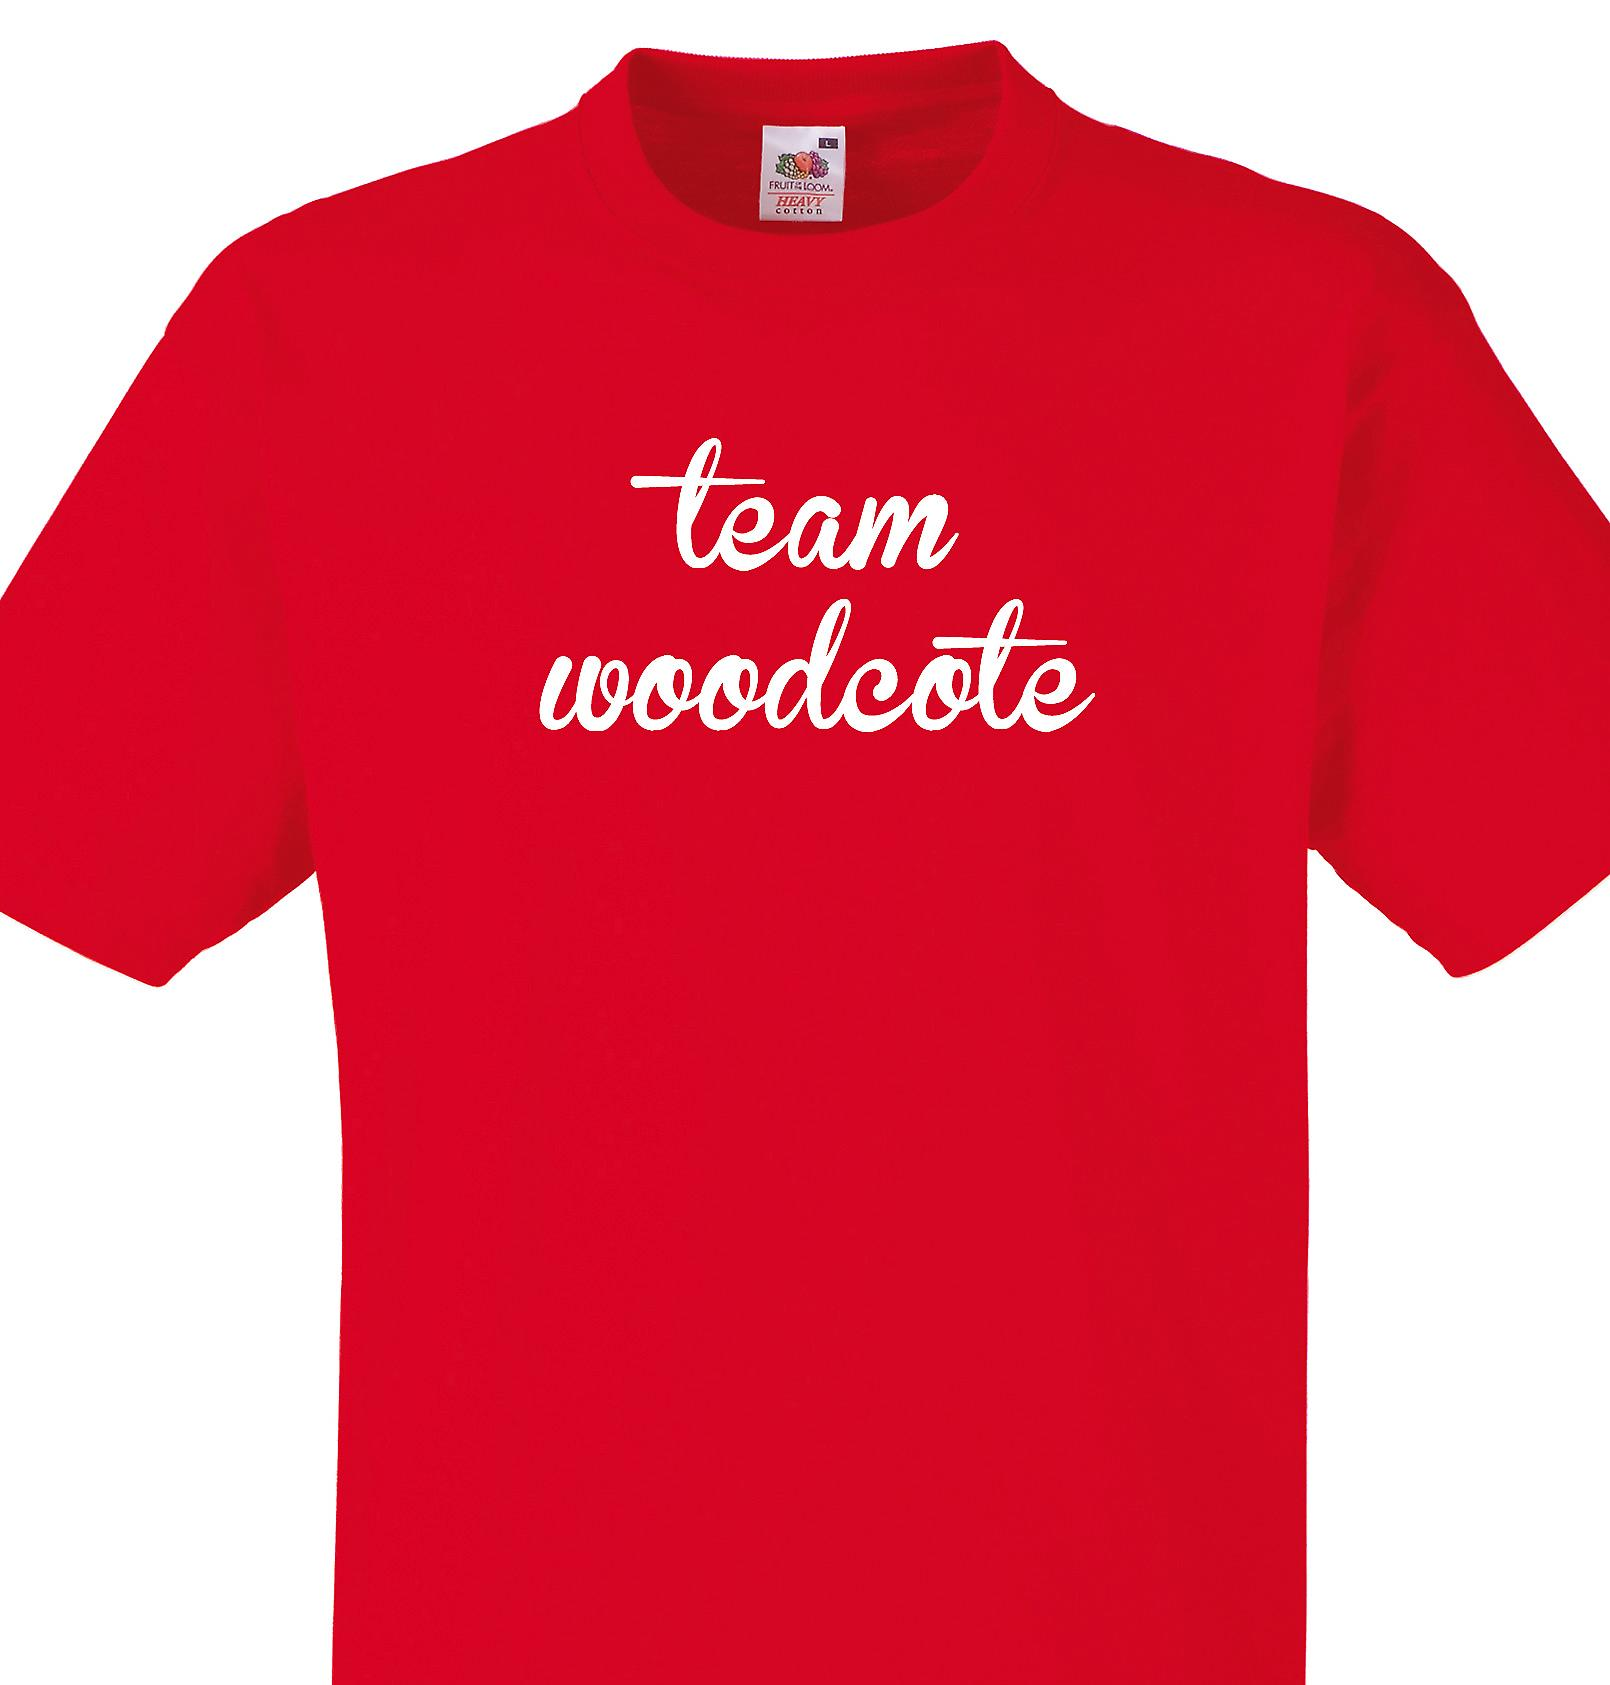 Team Woodcote Red T shirt